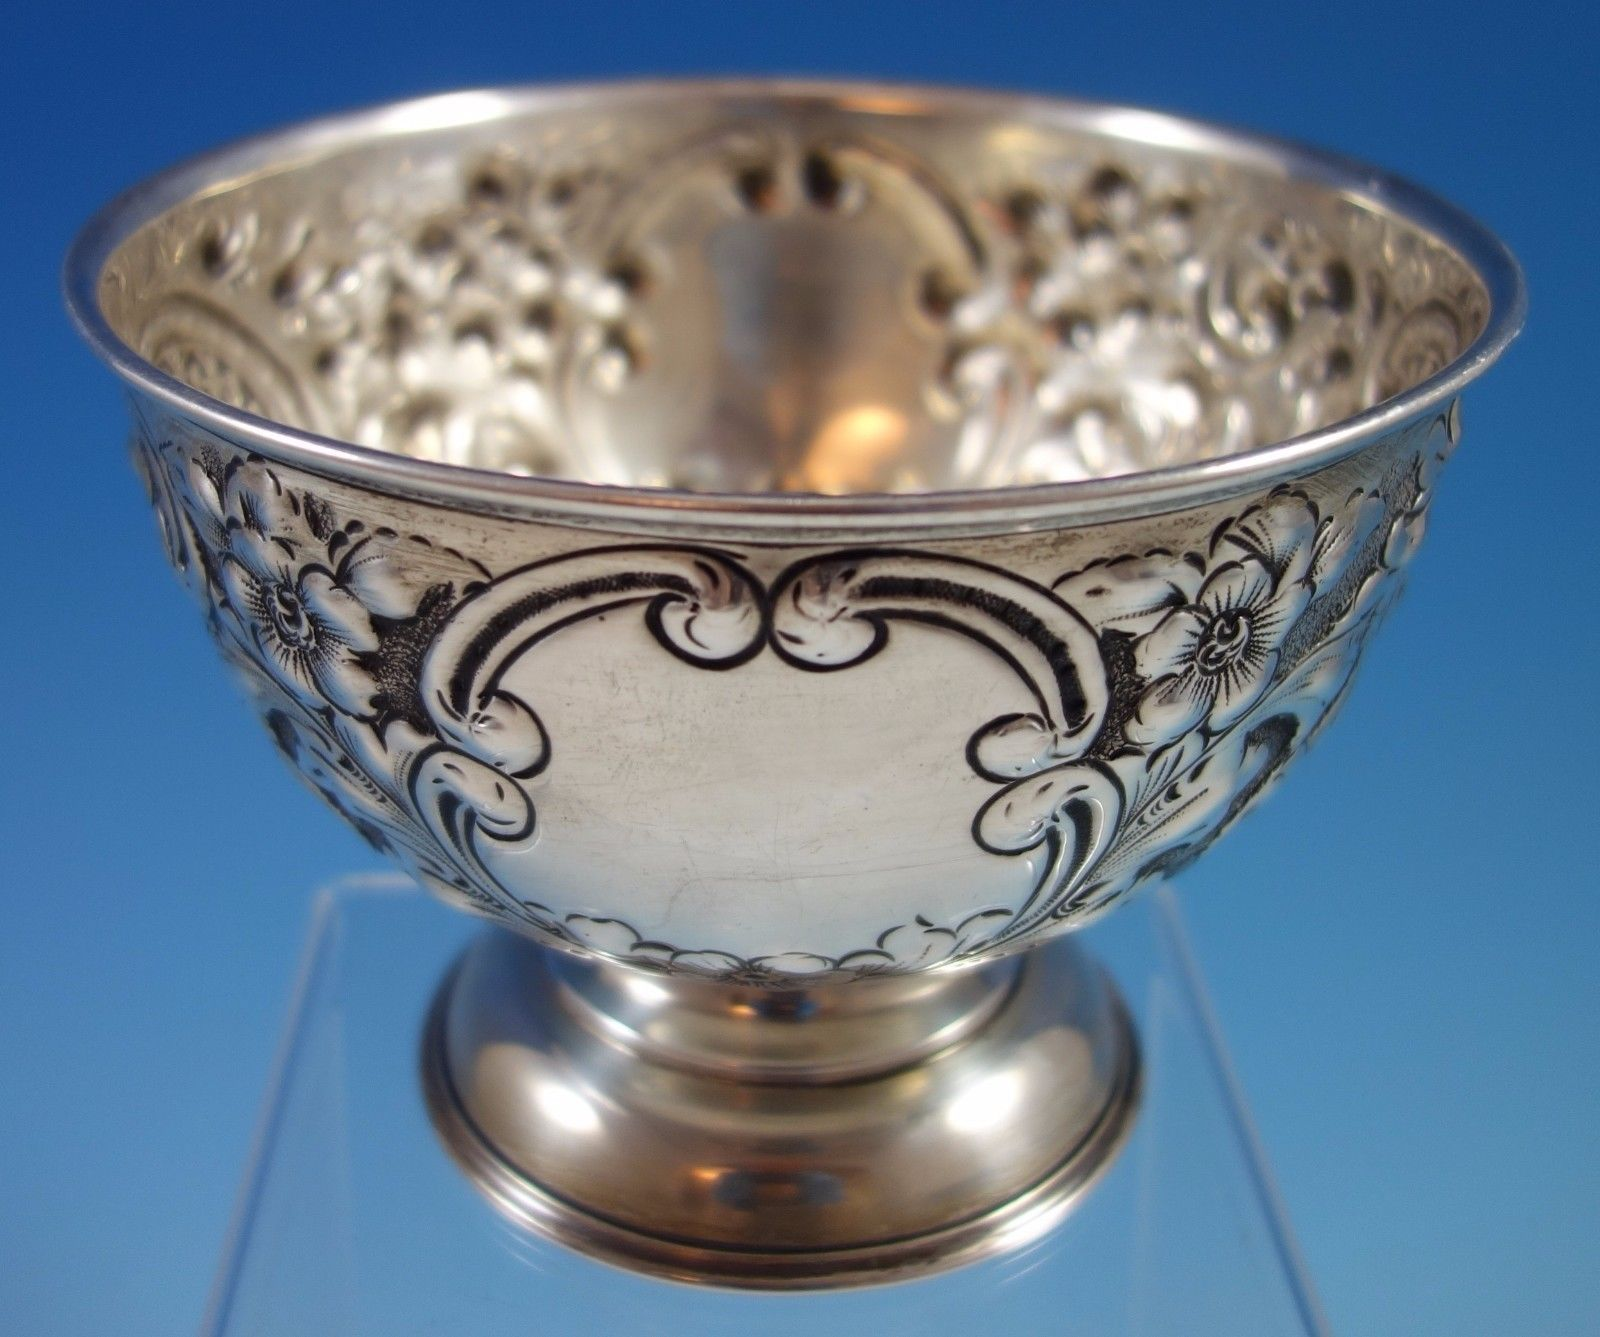 J. Gloster Ltd. English Sterling Silver Repoussed and Chased Pedastal Bowl #1651